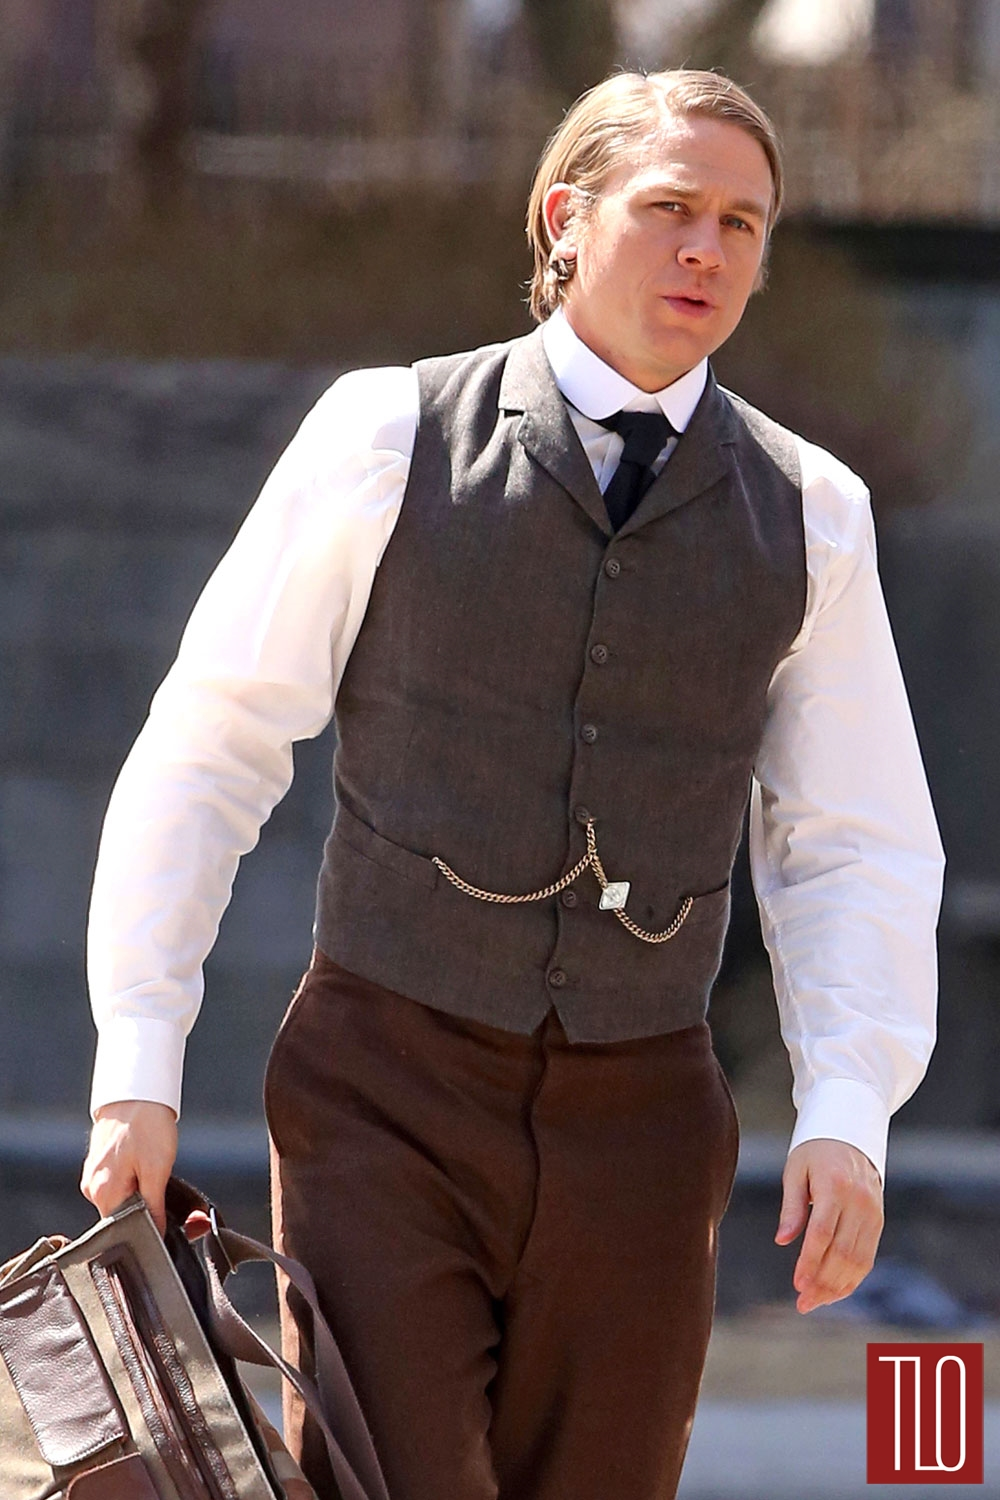 Charlie-Hunnam-Crimson-Peak-On-Set-Tom-Loenzo-Site-TLO (1)